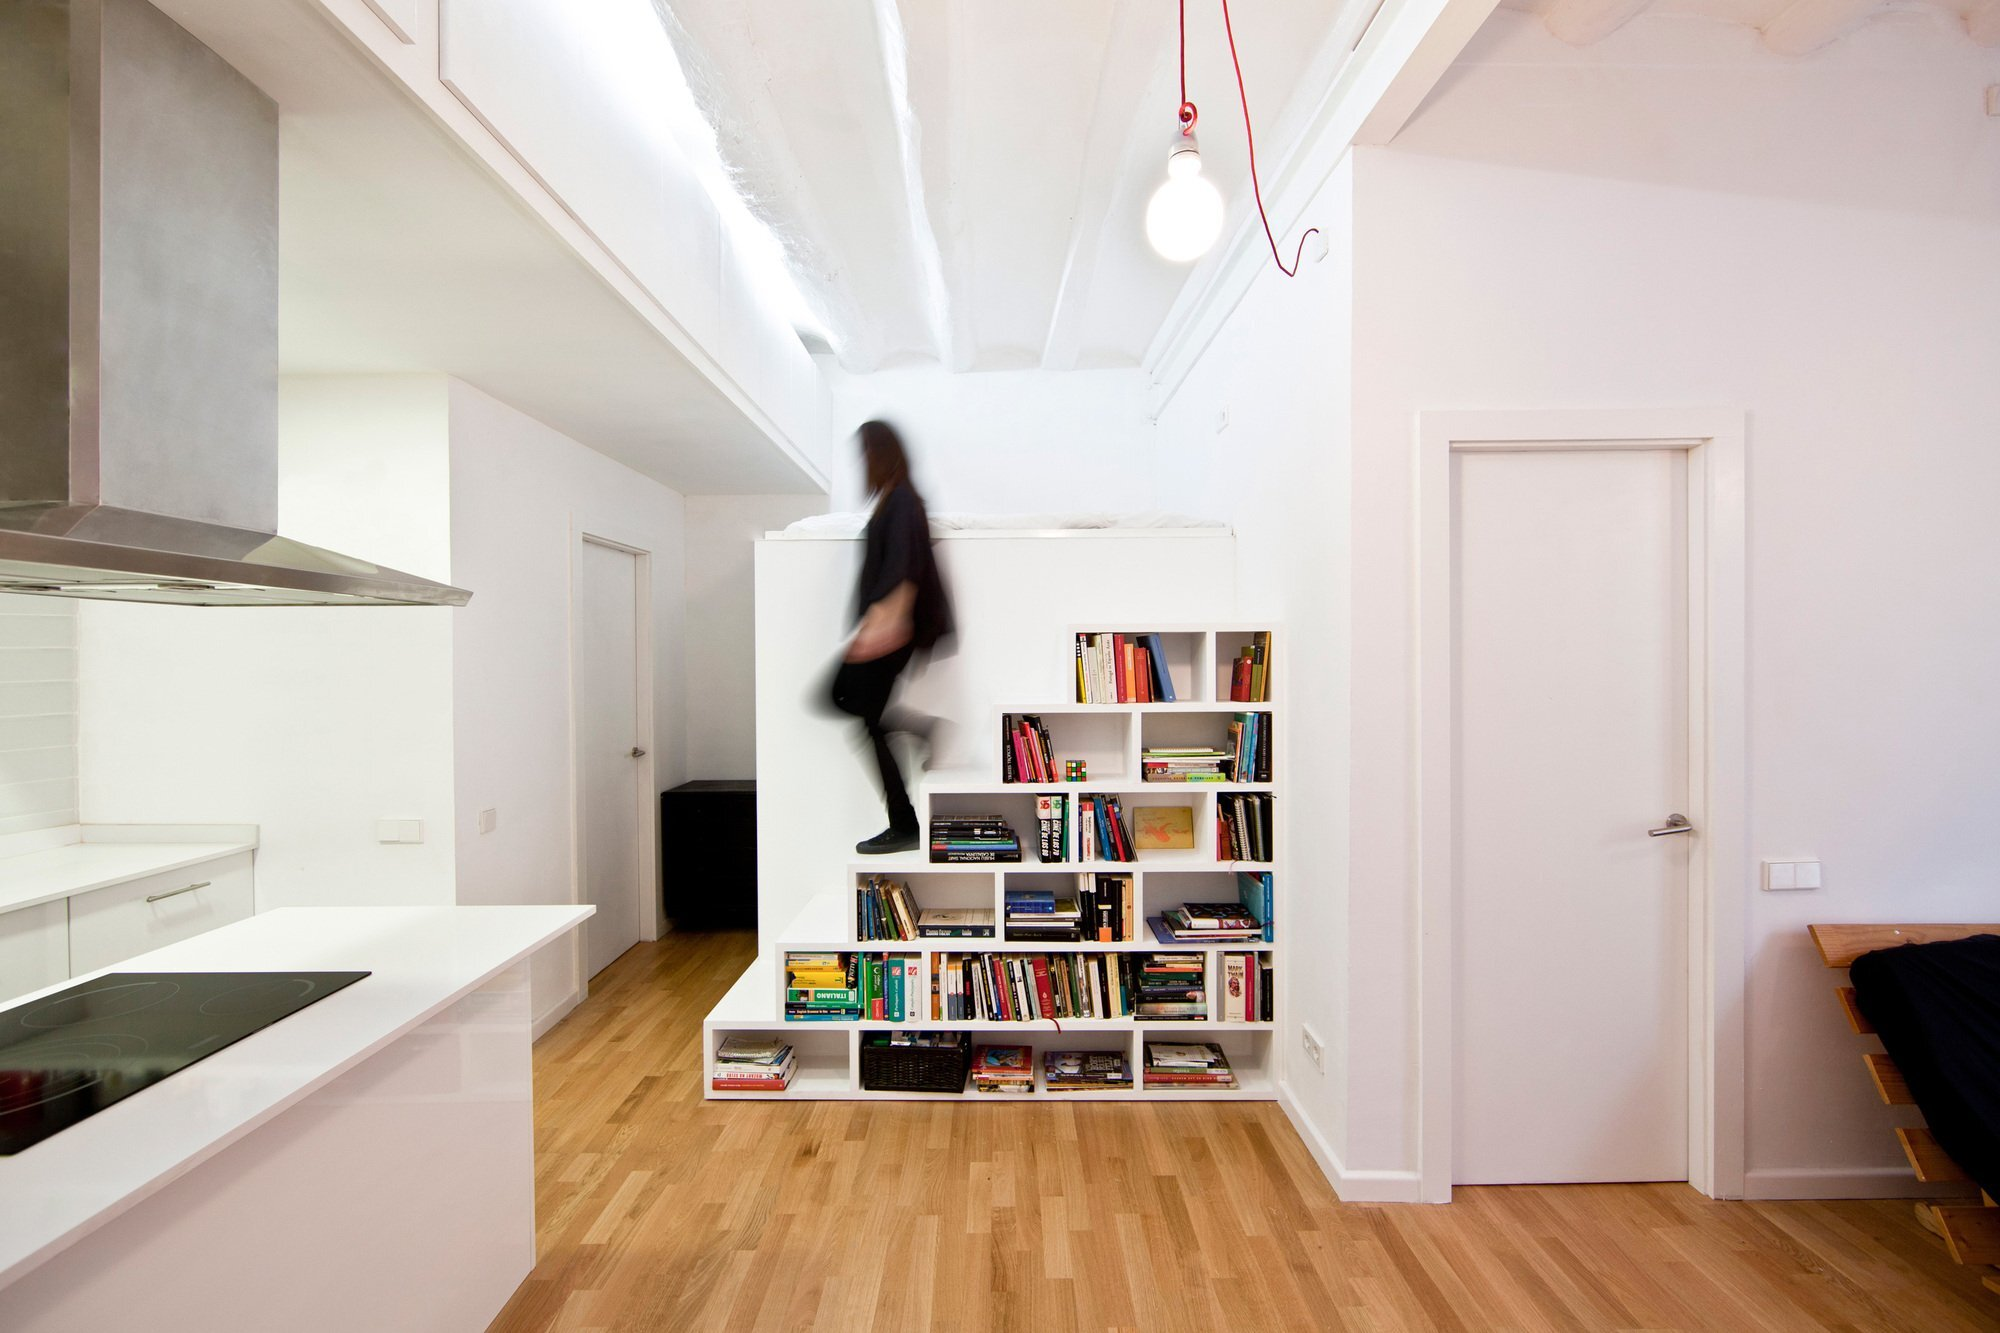 A 430 Square Foot Apartment Isnt Quite On The Micro Home Scale But Its Also Not Huge Amount Of Space For Say